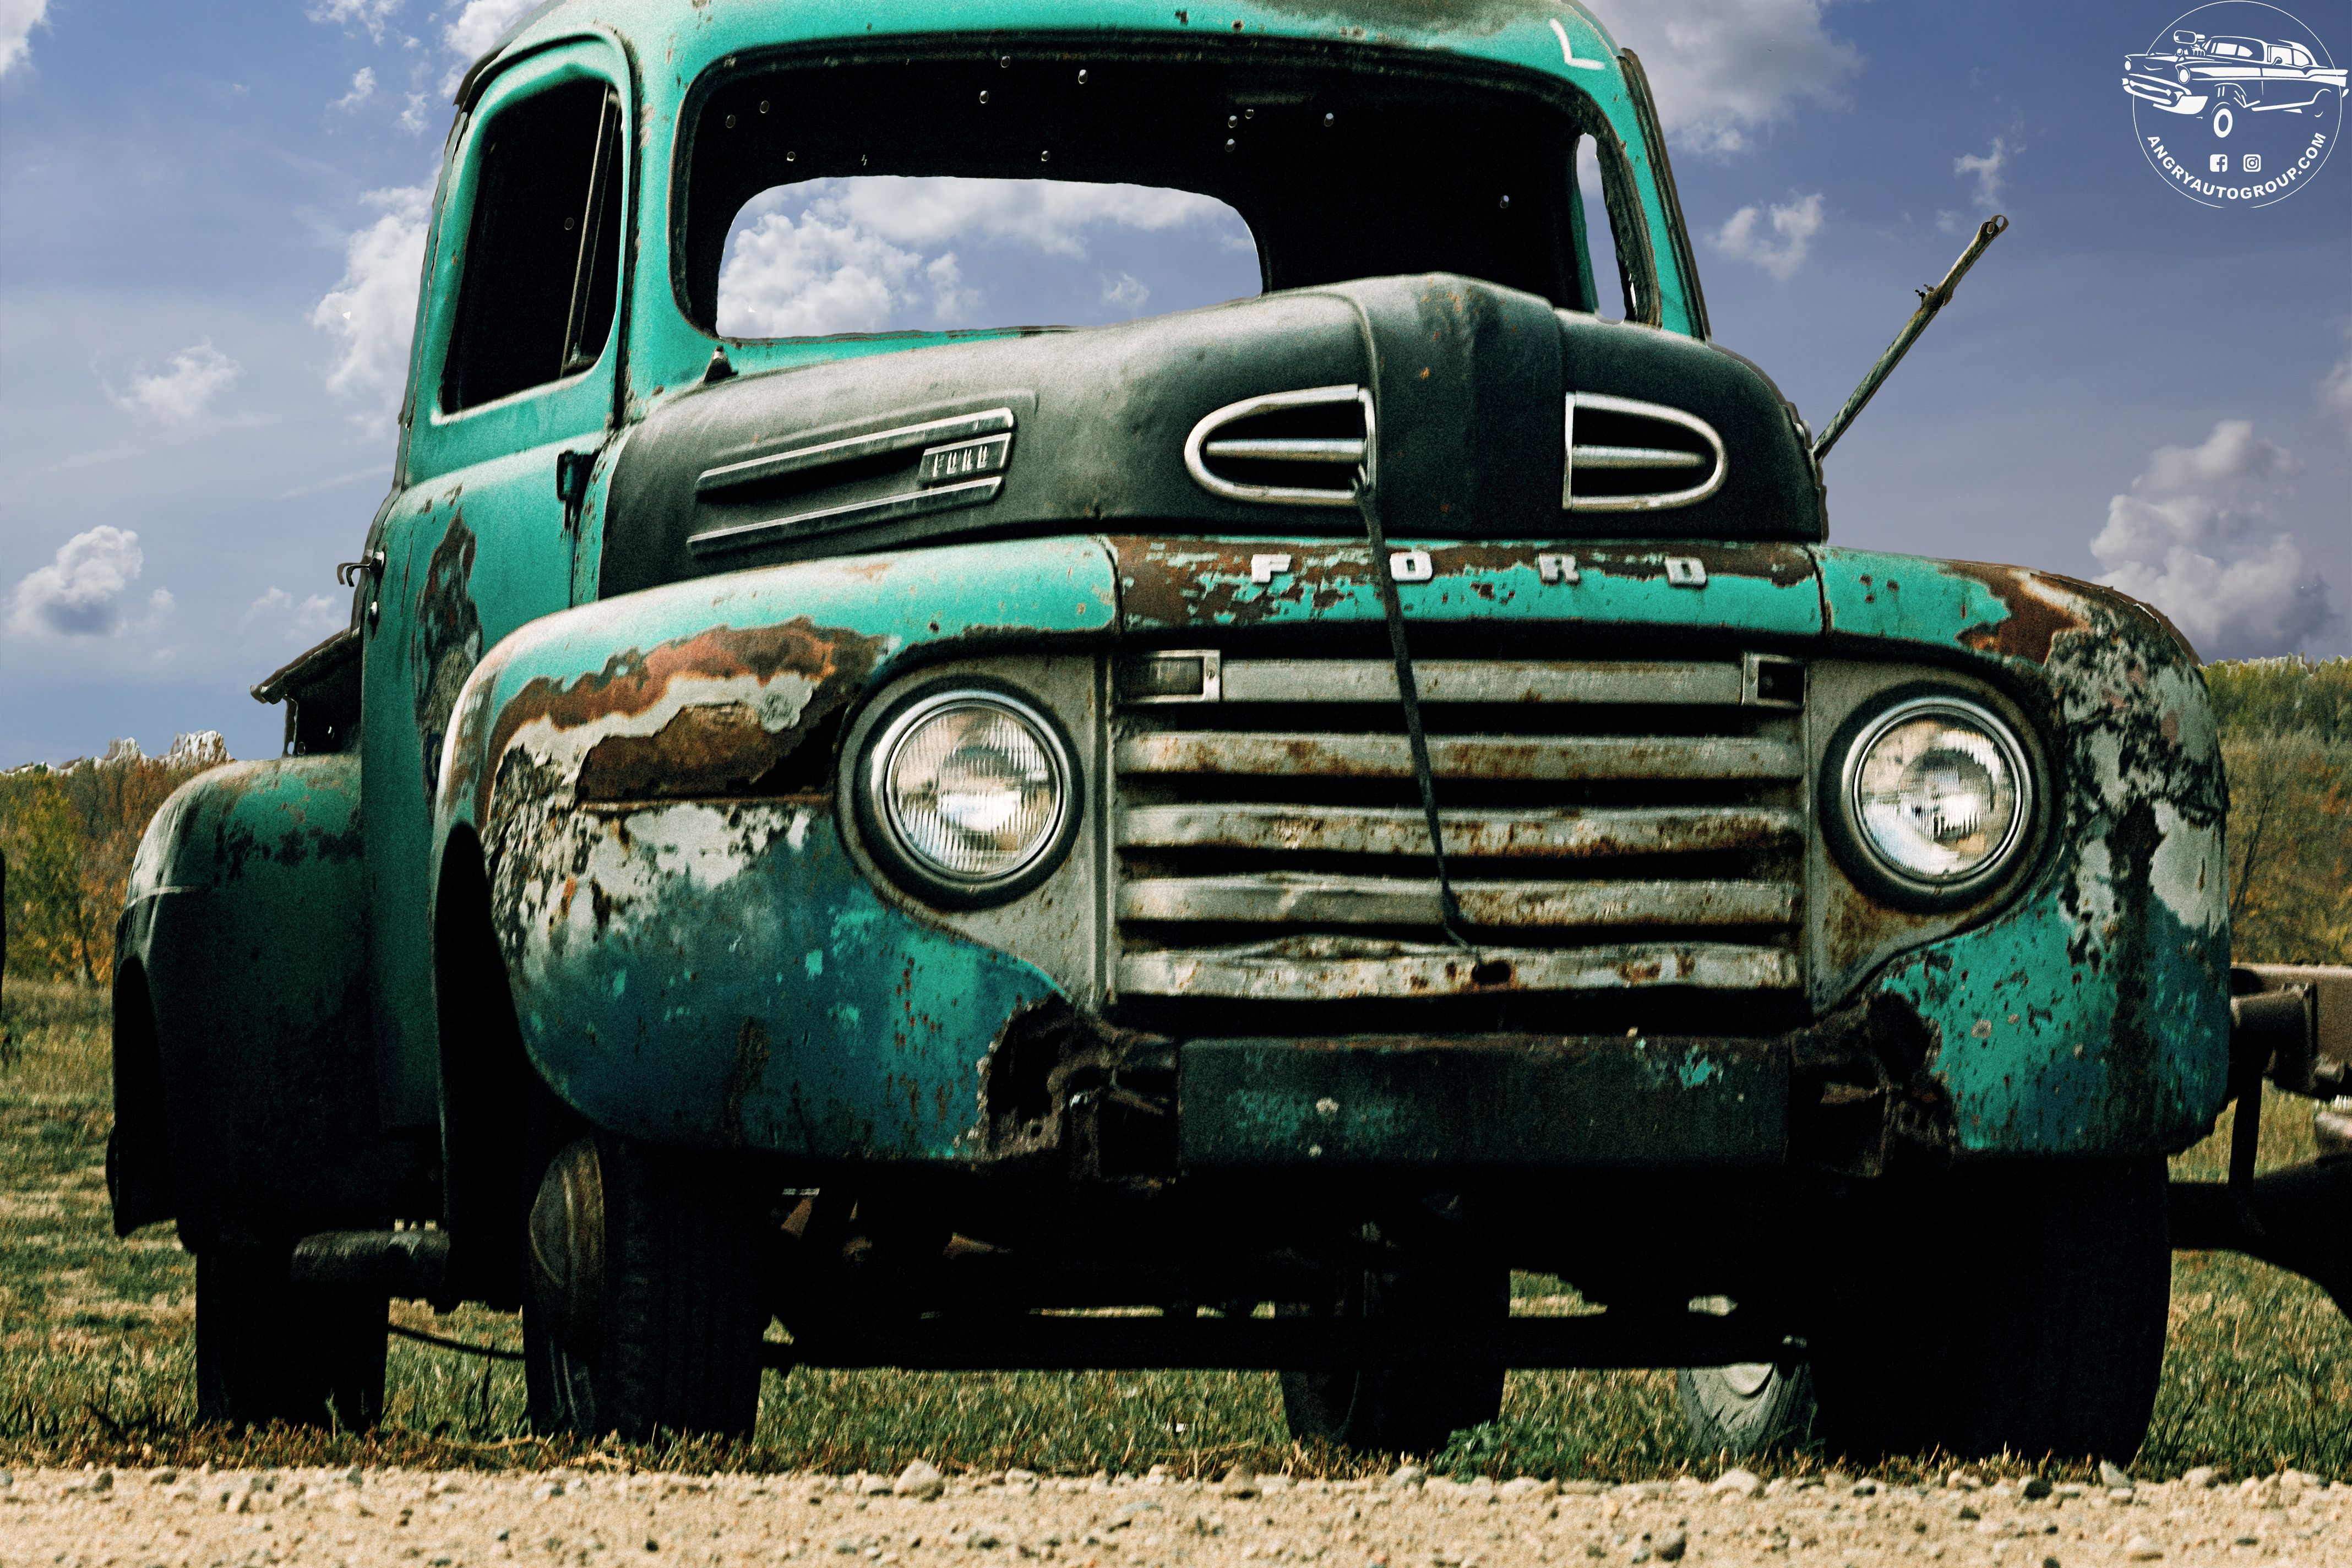 1948 Ford Pickup Every Vehicle Has A Story To Tell Angryautogroup Vehicles Classic Cars Ford Pickup